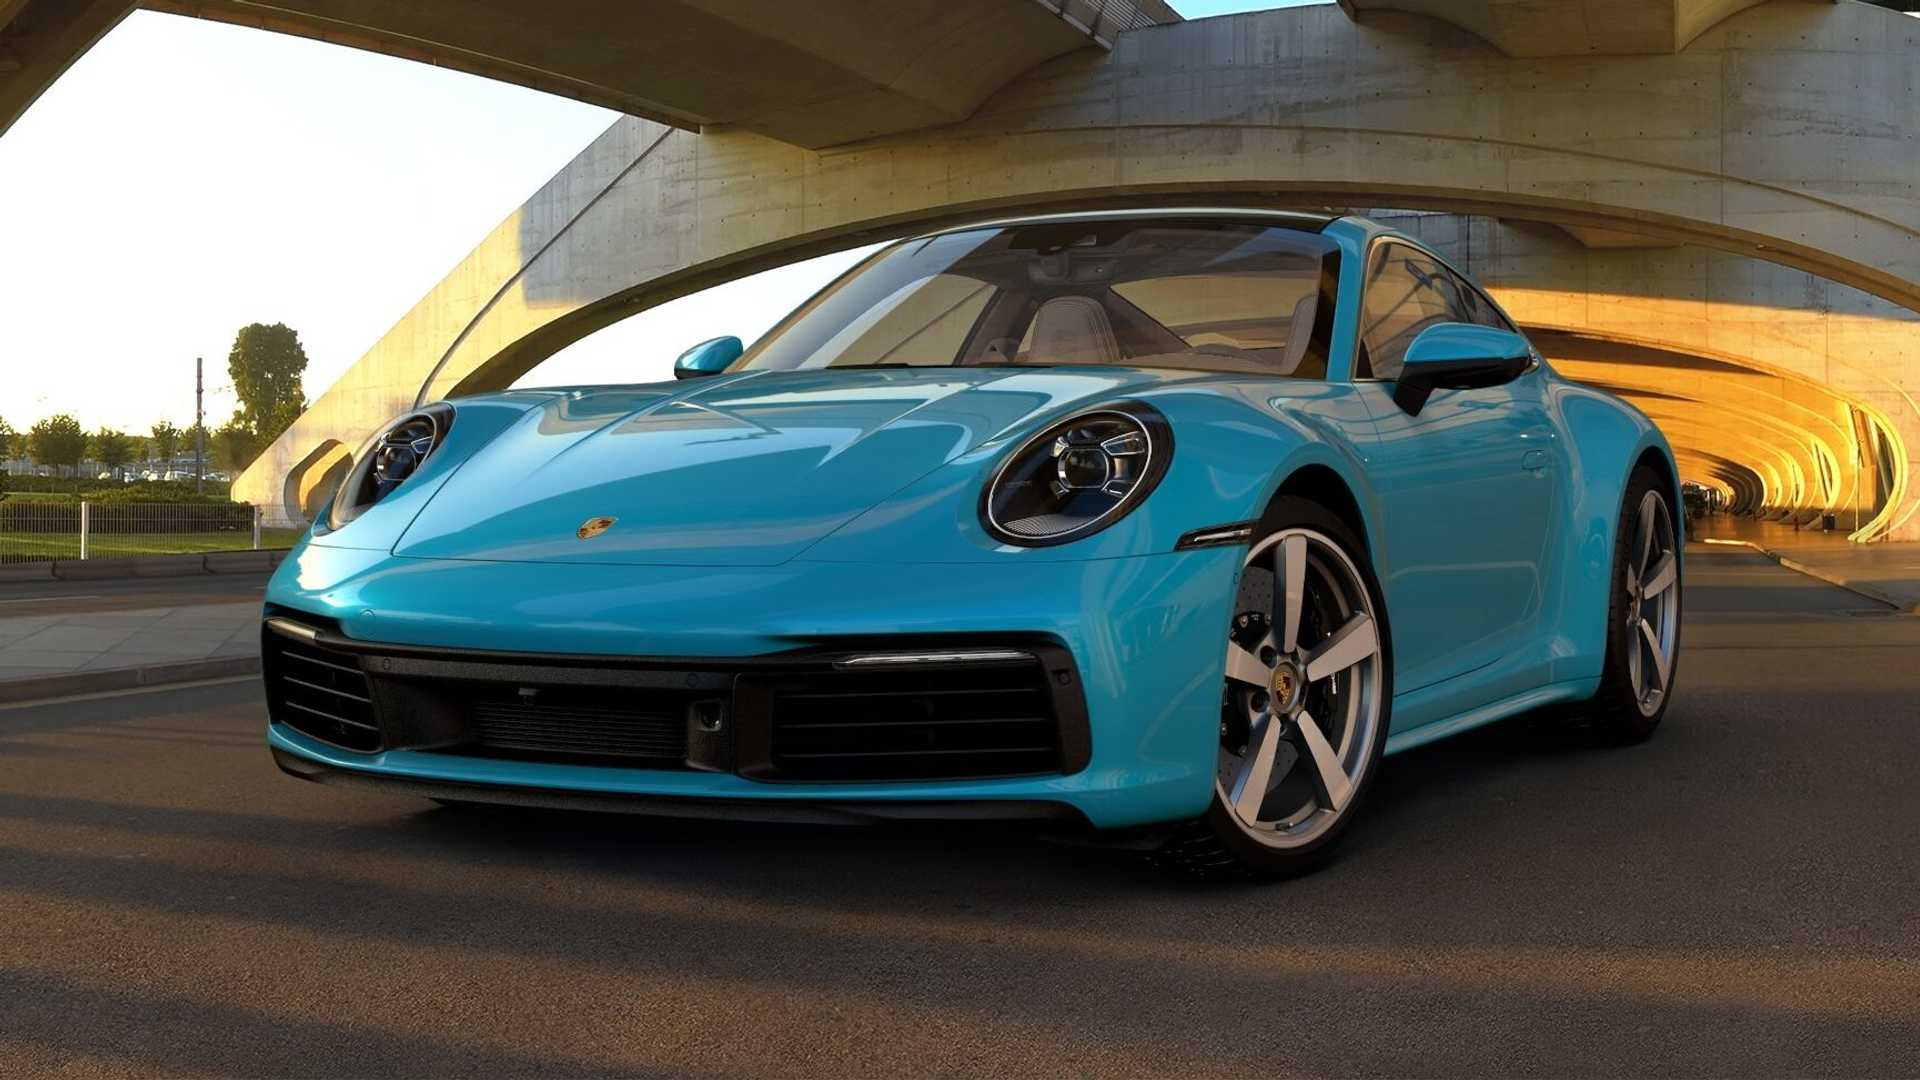 99 New 2020 Porsche Redesign and Concept by 2020 Porsche